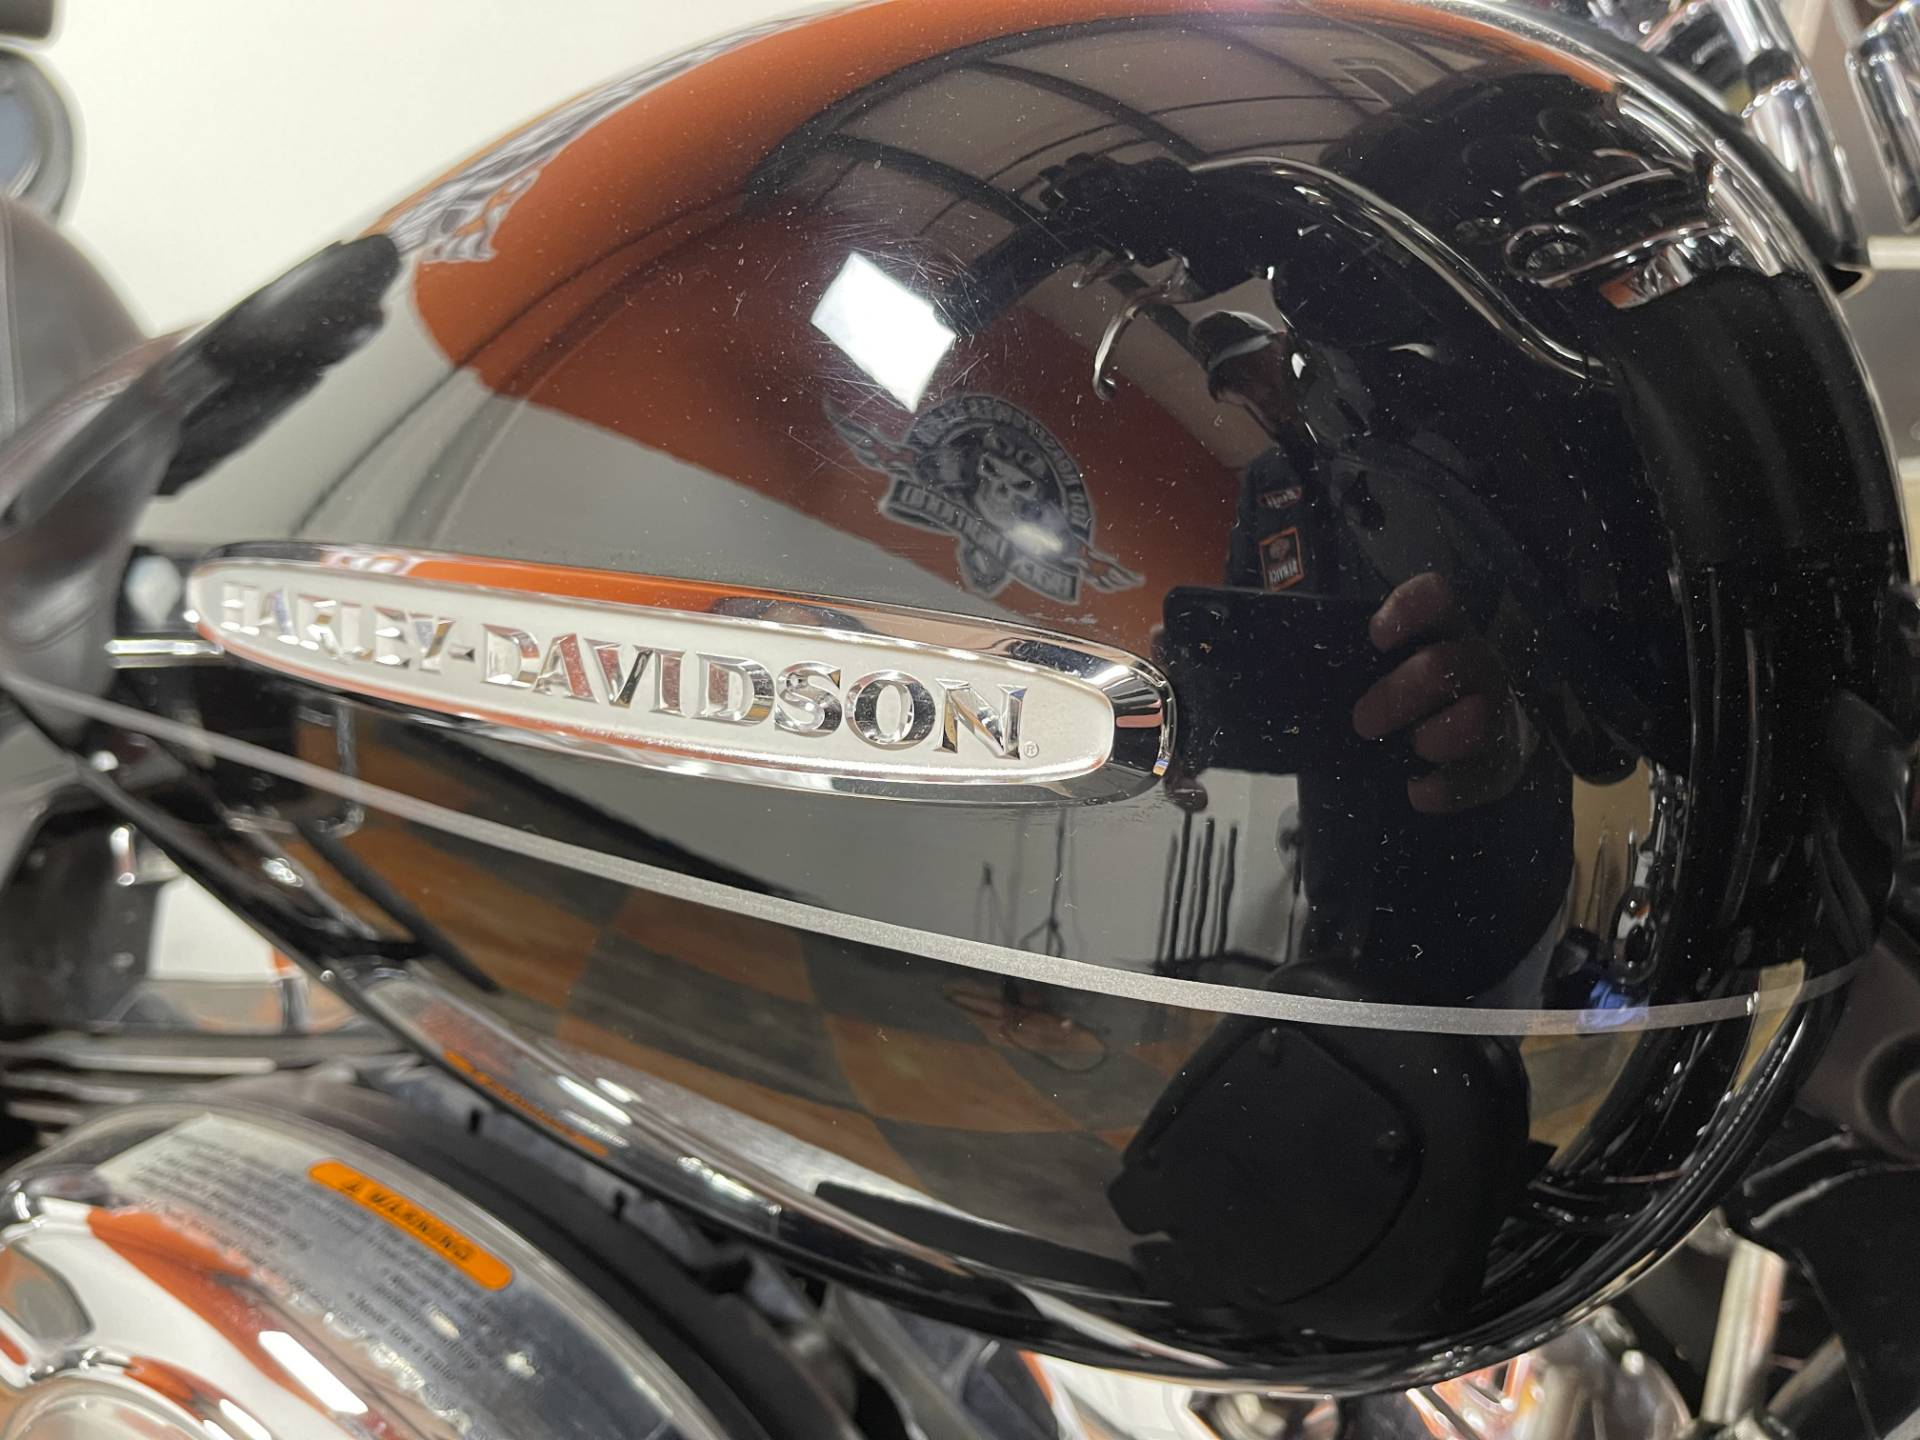 2011 Harley-Davidson Electra Glide® Ultra Limited in Marion, Illinois - Photo 3